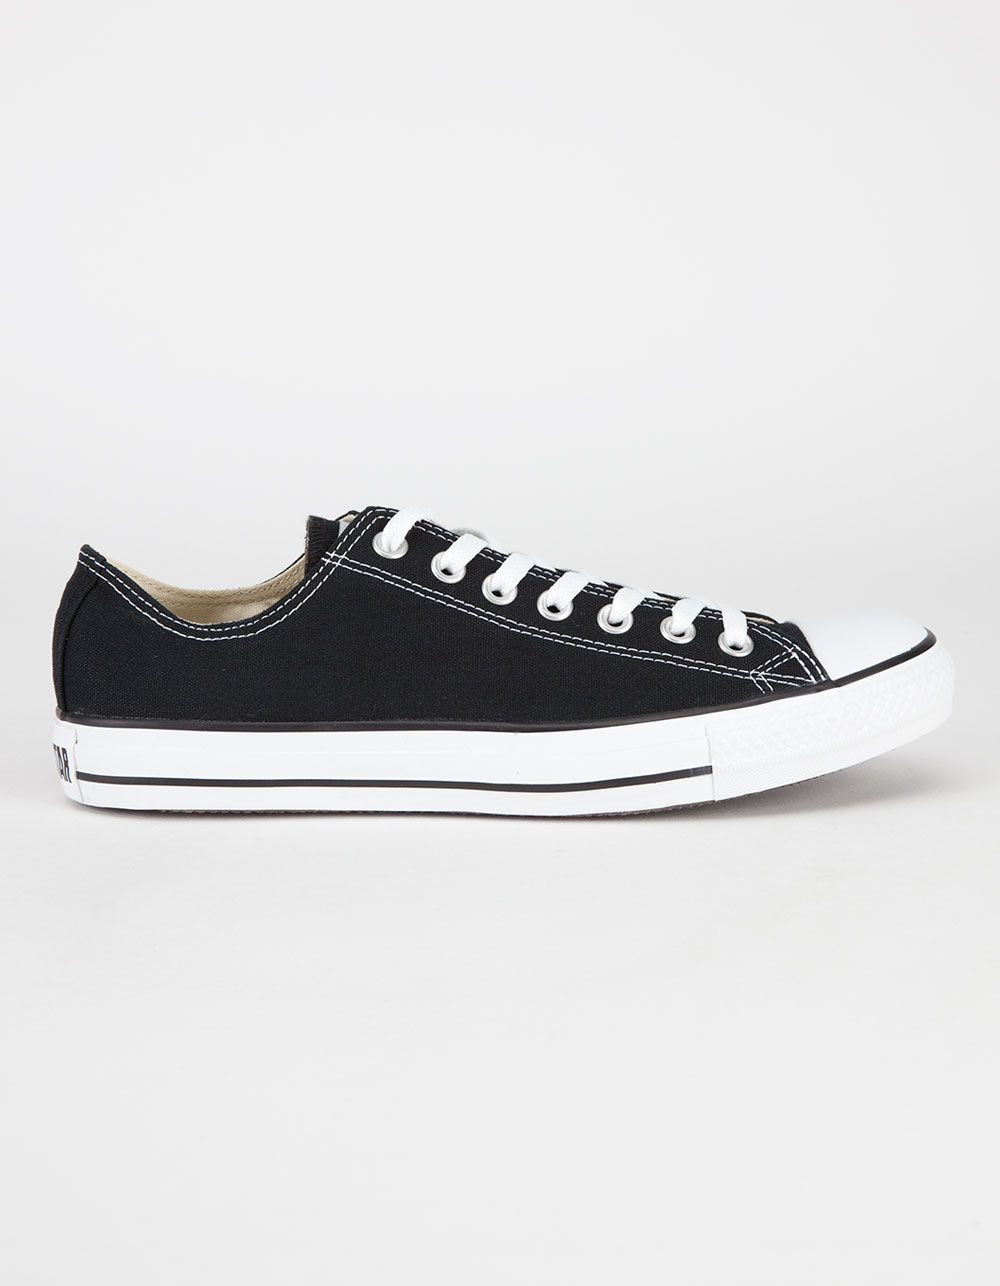 4843b77f1a Classic Chucks! Converse Chuck Taylor All Star Low shoes. Canvas upper.  Padded insole. Rubber toe cap. Vulcanized rubber outsole. Rubber Converse  All Star ...